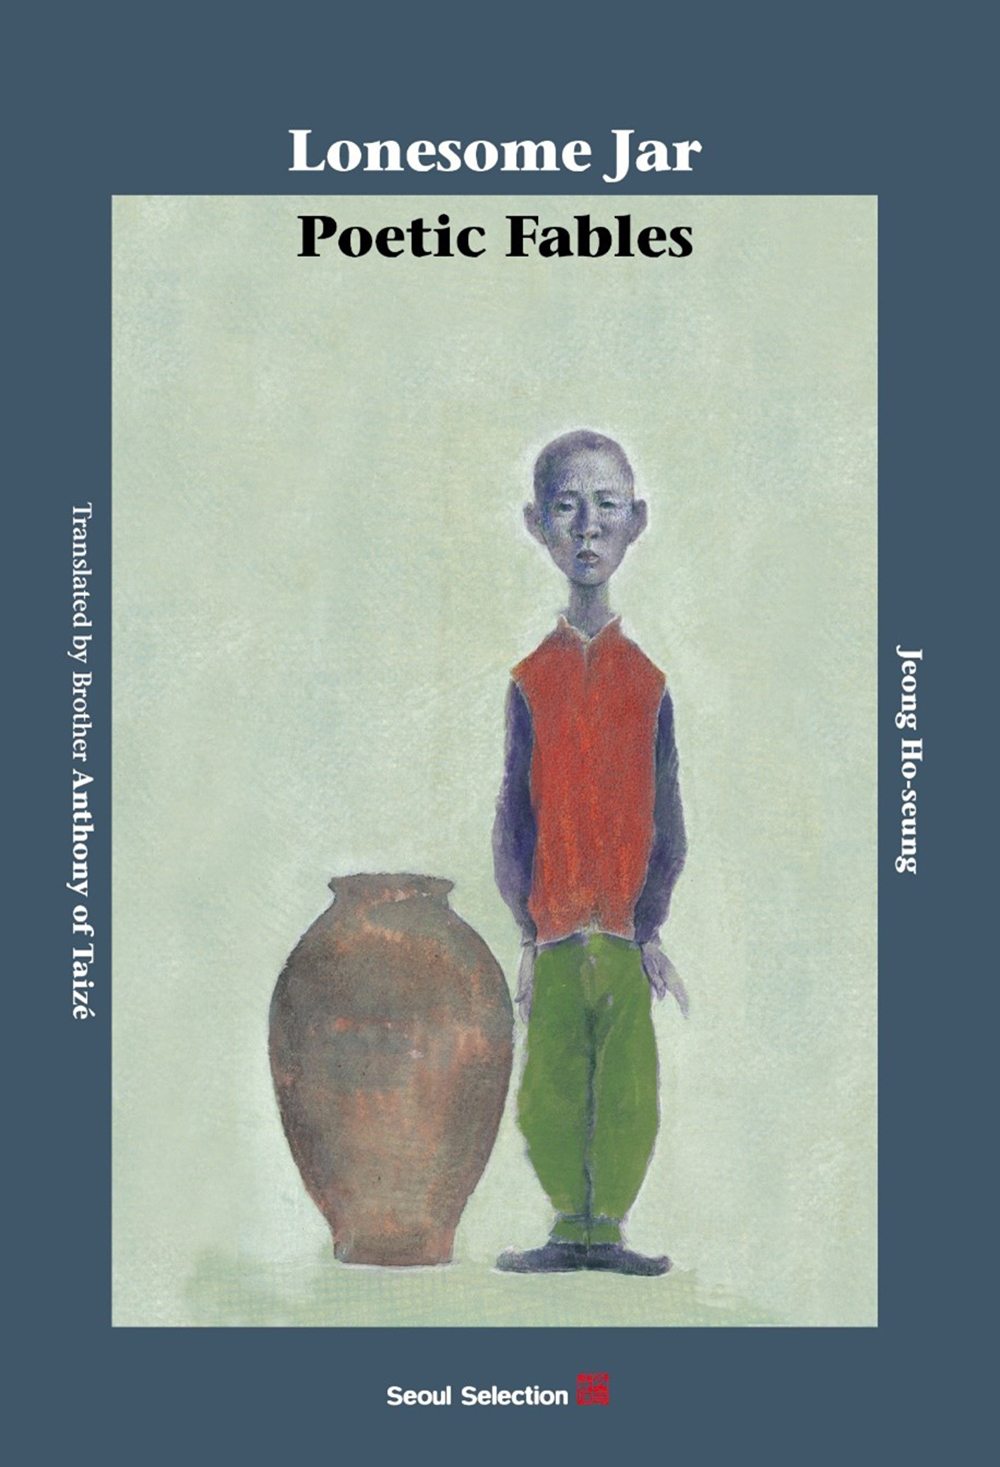 Lonesome Jar: Poetic Fables